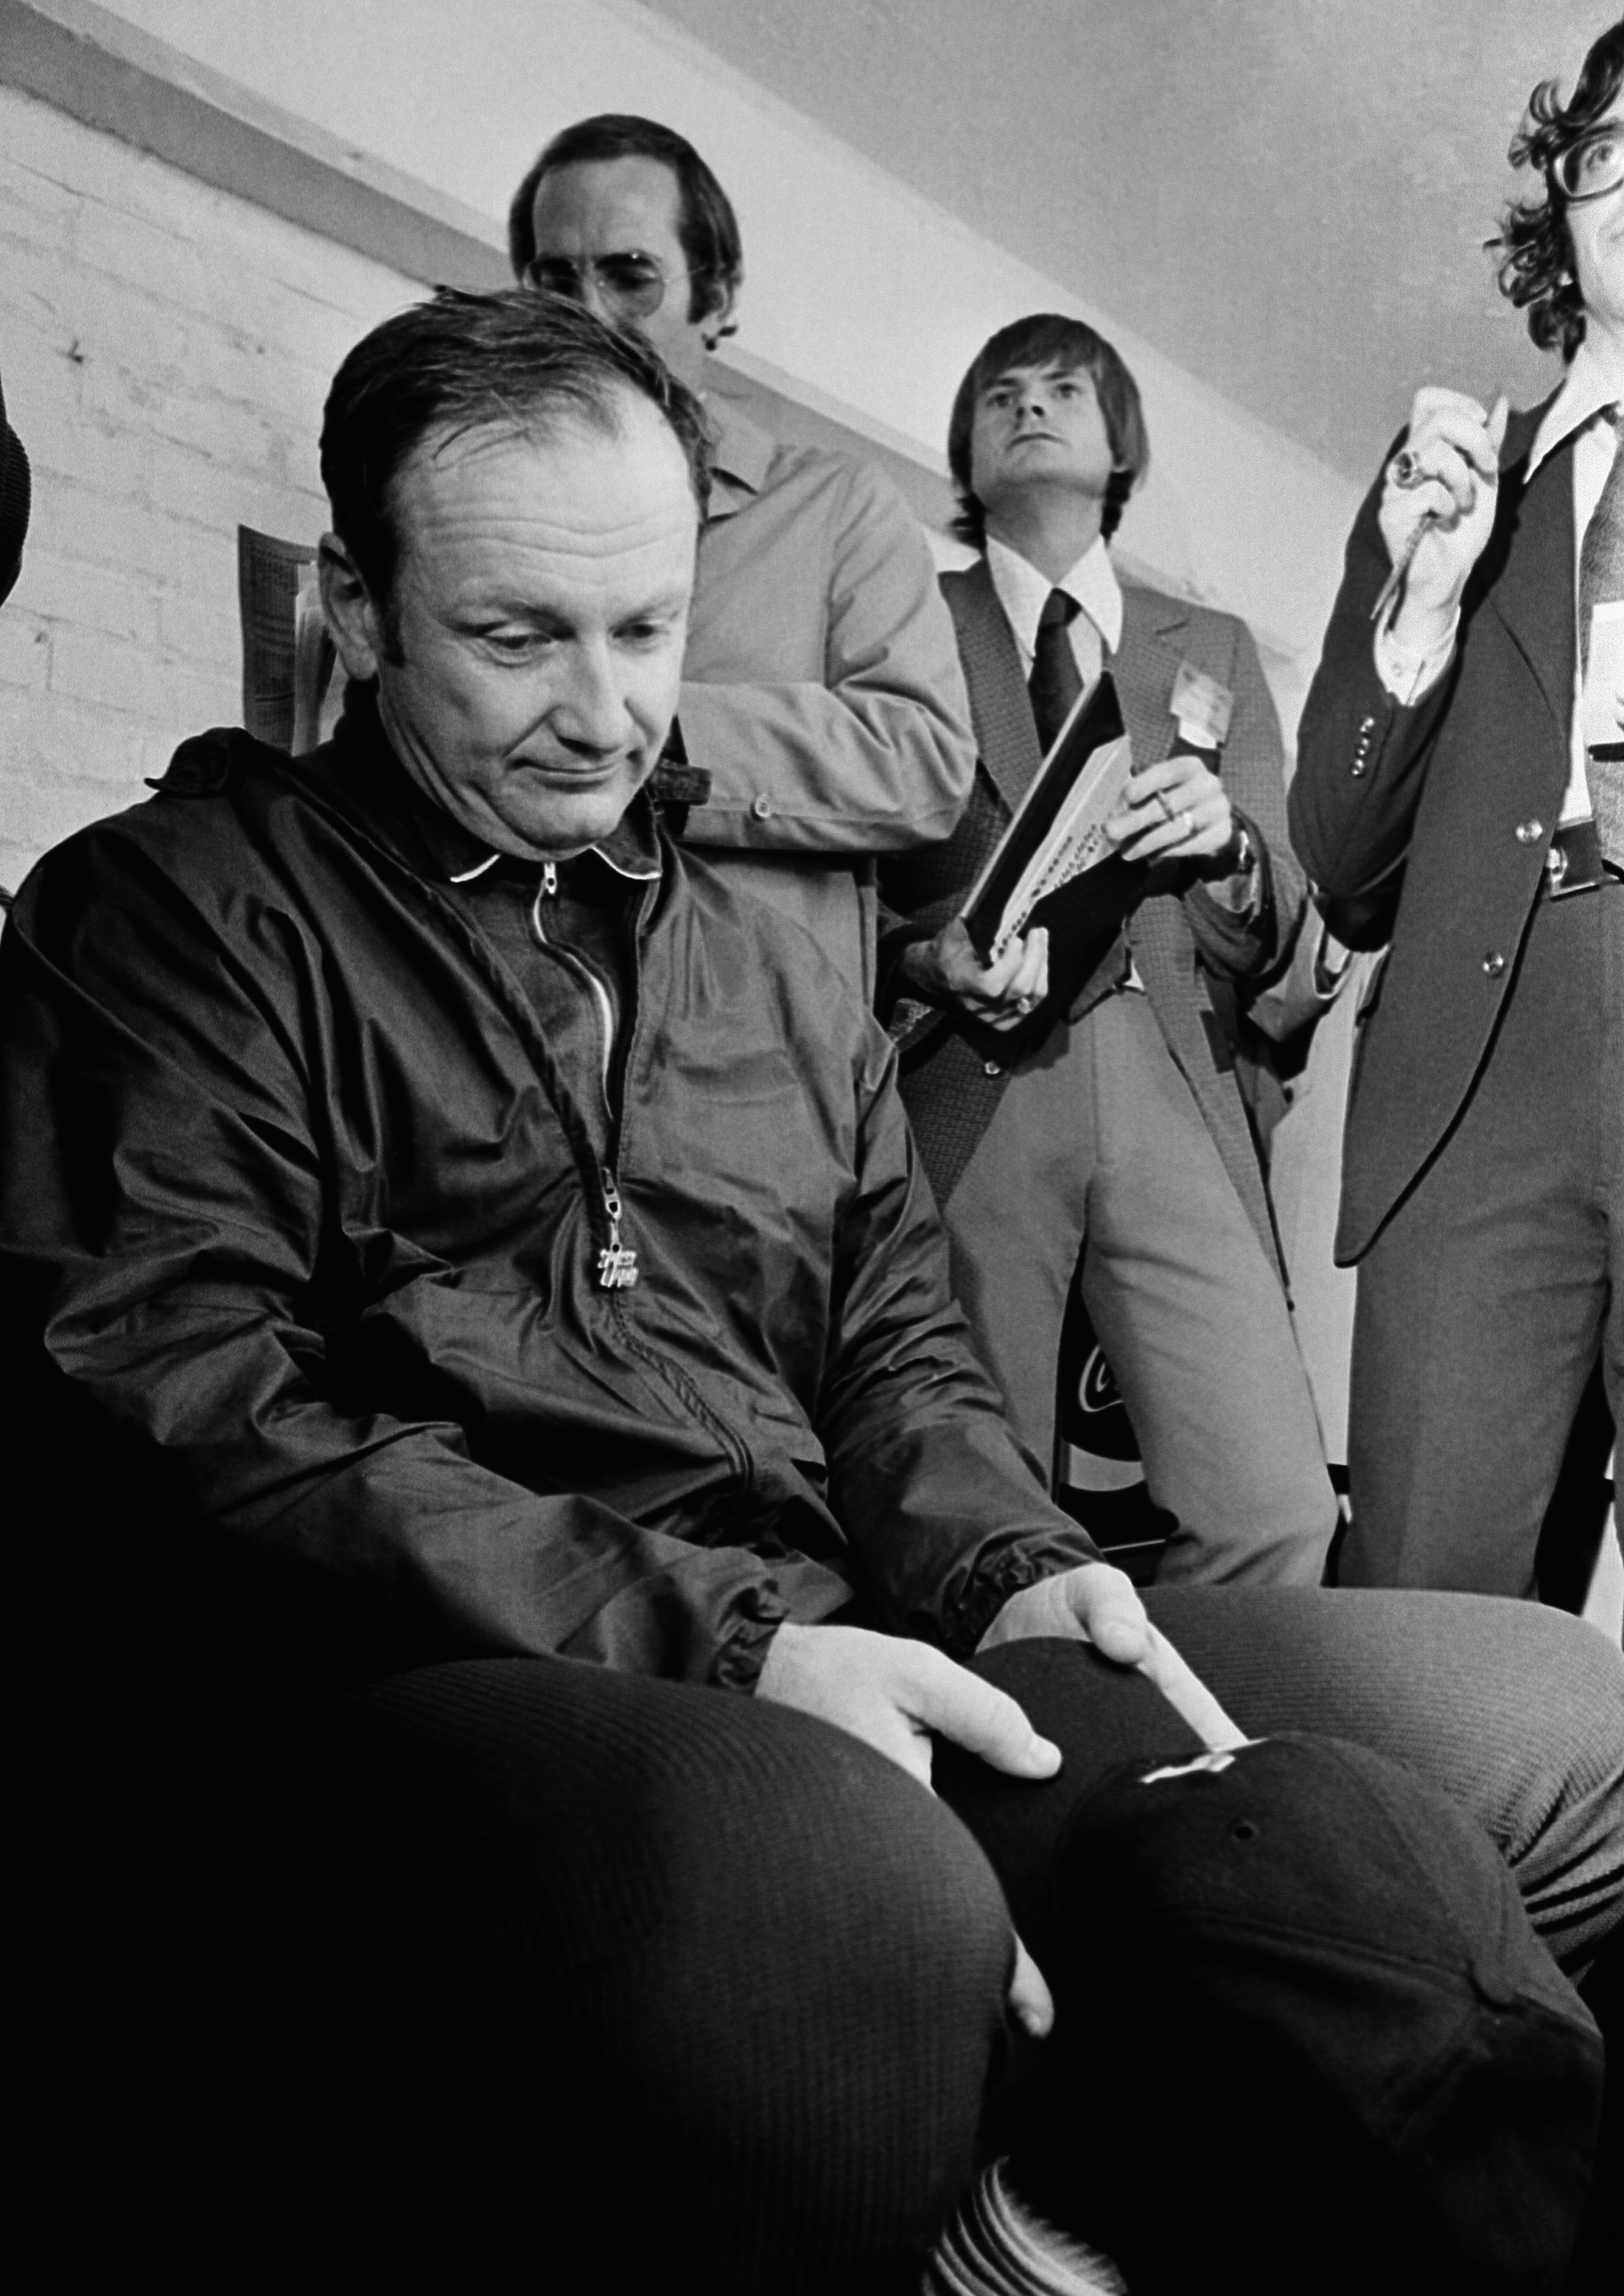 FILE - In this Nov. 24, 1973, file photo, Michigan football coach Bo Schembechler bows his head as he is interviewed after a 10-10 tie against Ohio State, in Ann Arbor, Mich.  (AP Photo/File)